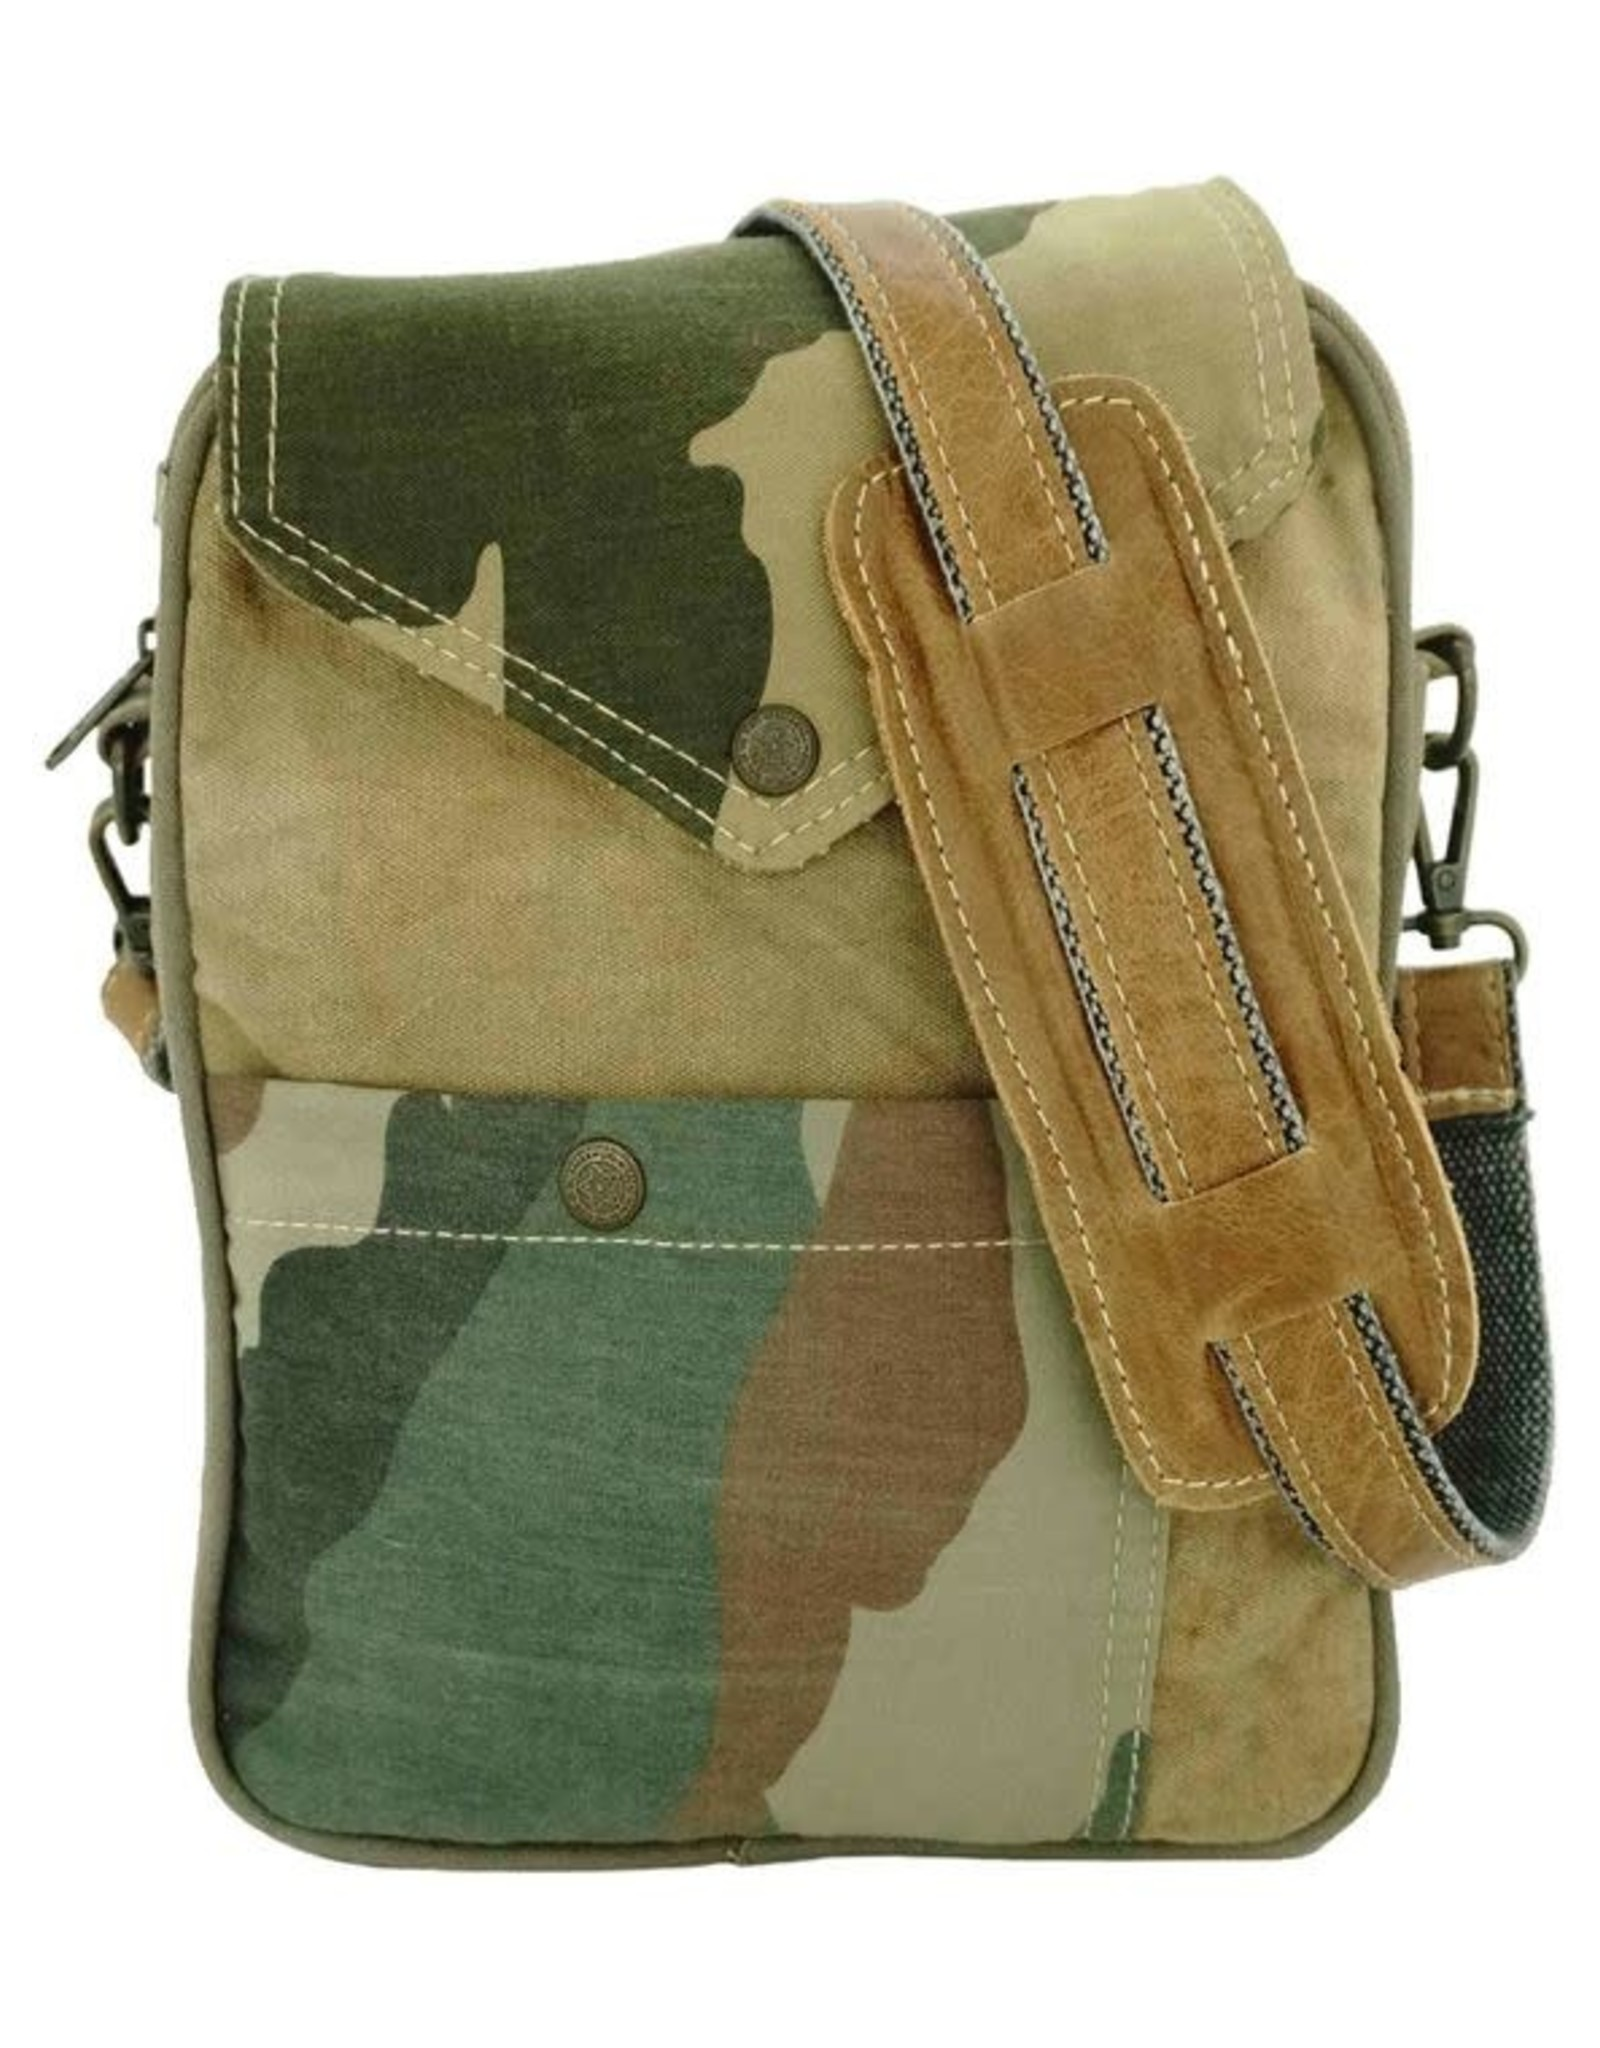 Vintage Addiction Recycled Military Tent Crossbody - Camo